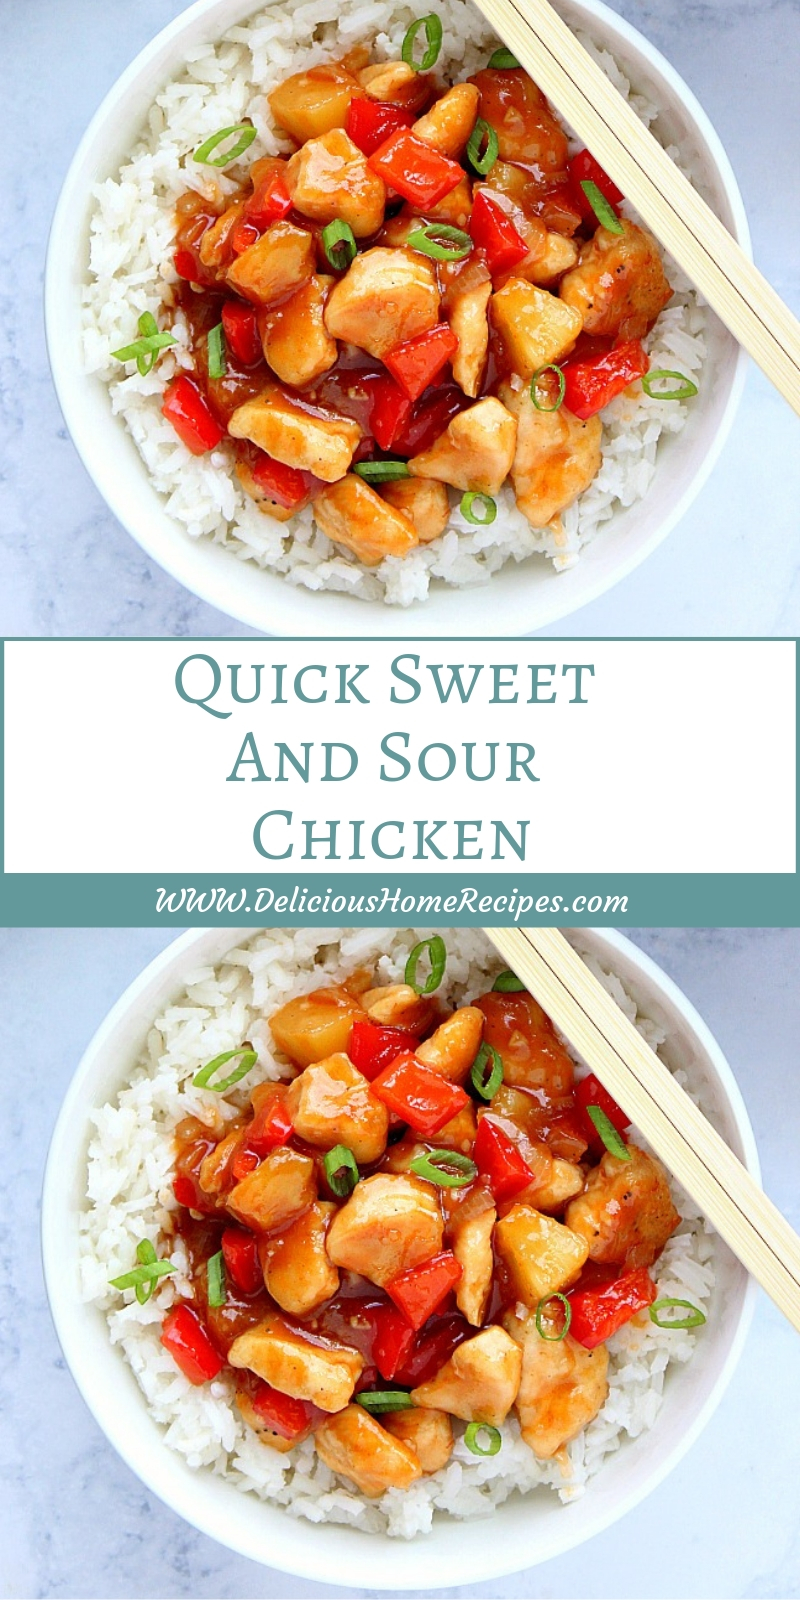 Quick Sweet And Sour Chicken